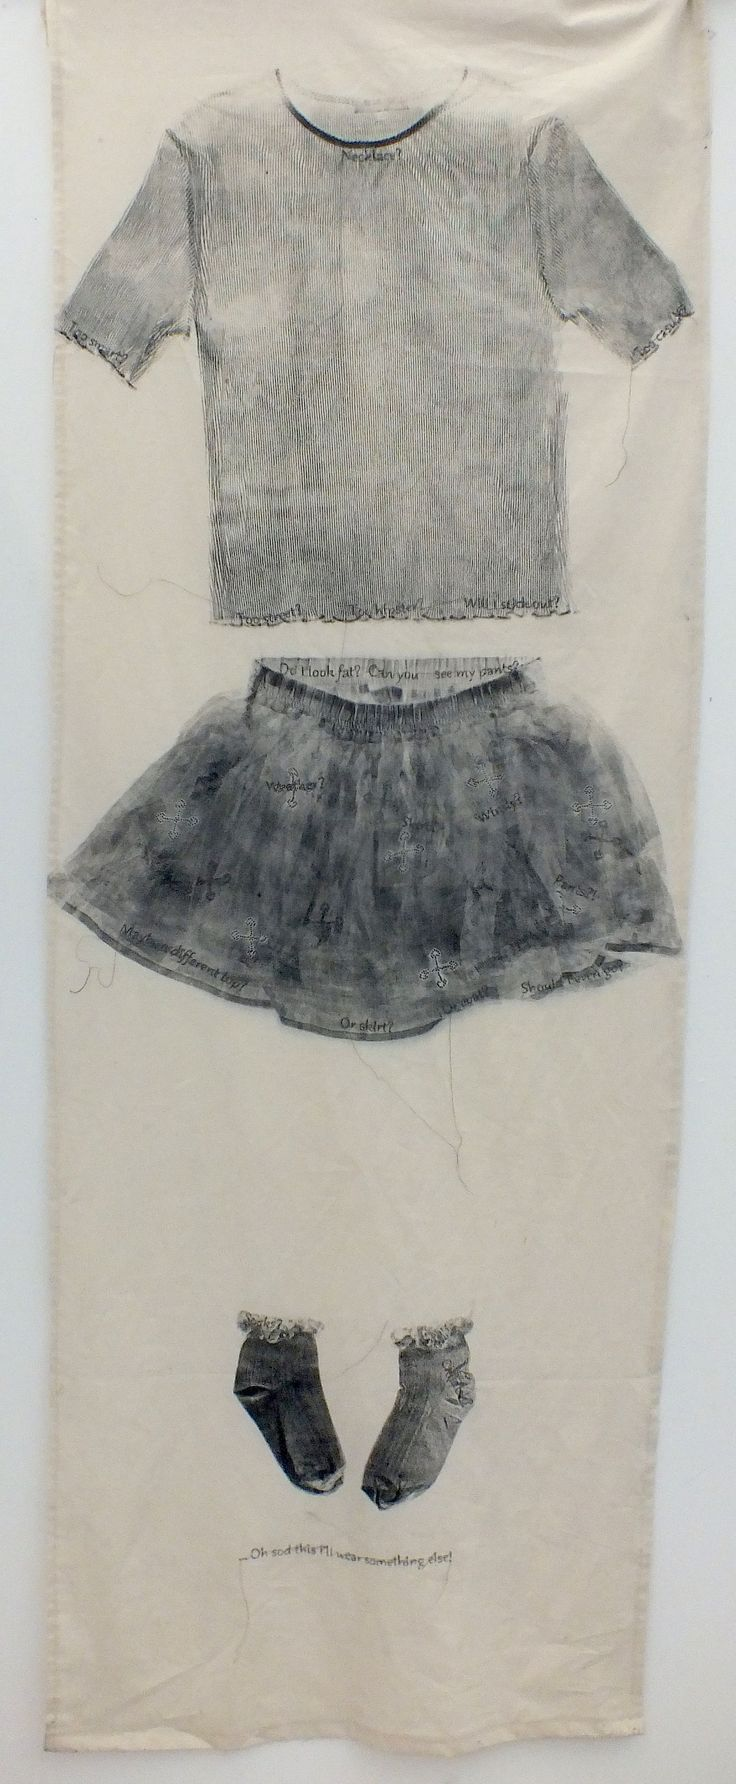 Ellie M - Monotype and Stitch -  1 of 3  - Truro College A Level Fine Art - Coursework Show 2017